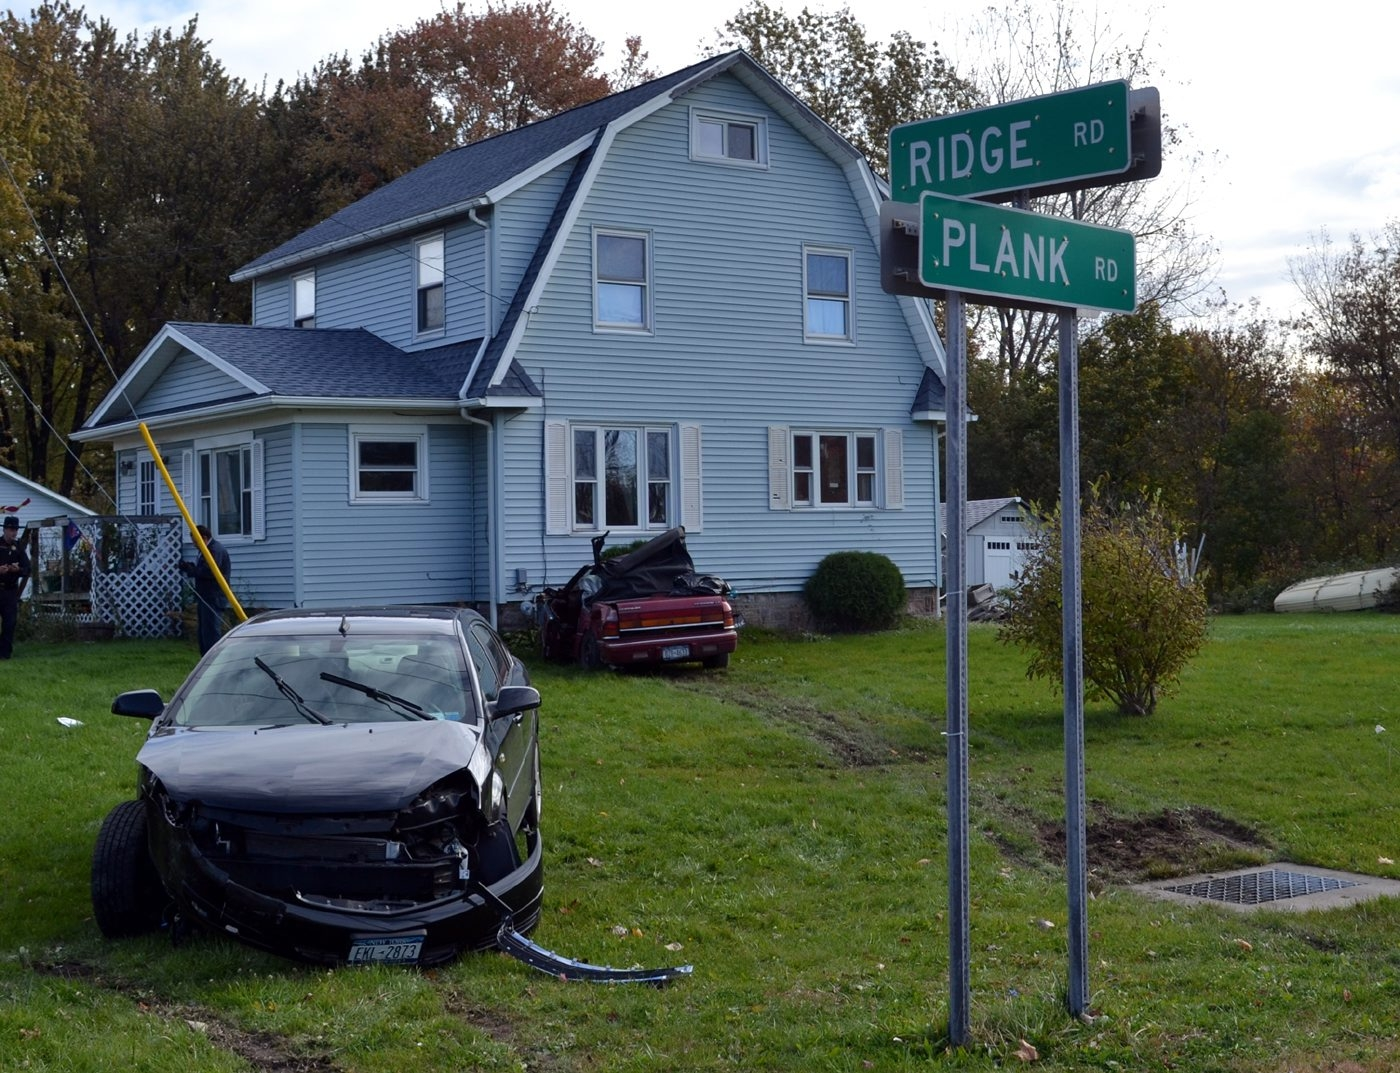 These two cars collided at Plank and Ridge roads in Cambria, causing one of the vehicles to sideswipe bushes and a gas meter at this home. Both drivers and a passenger were taken to hospitals, but the injuries were not believed to be serious.